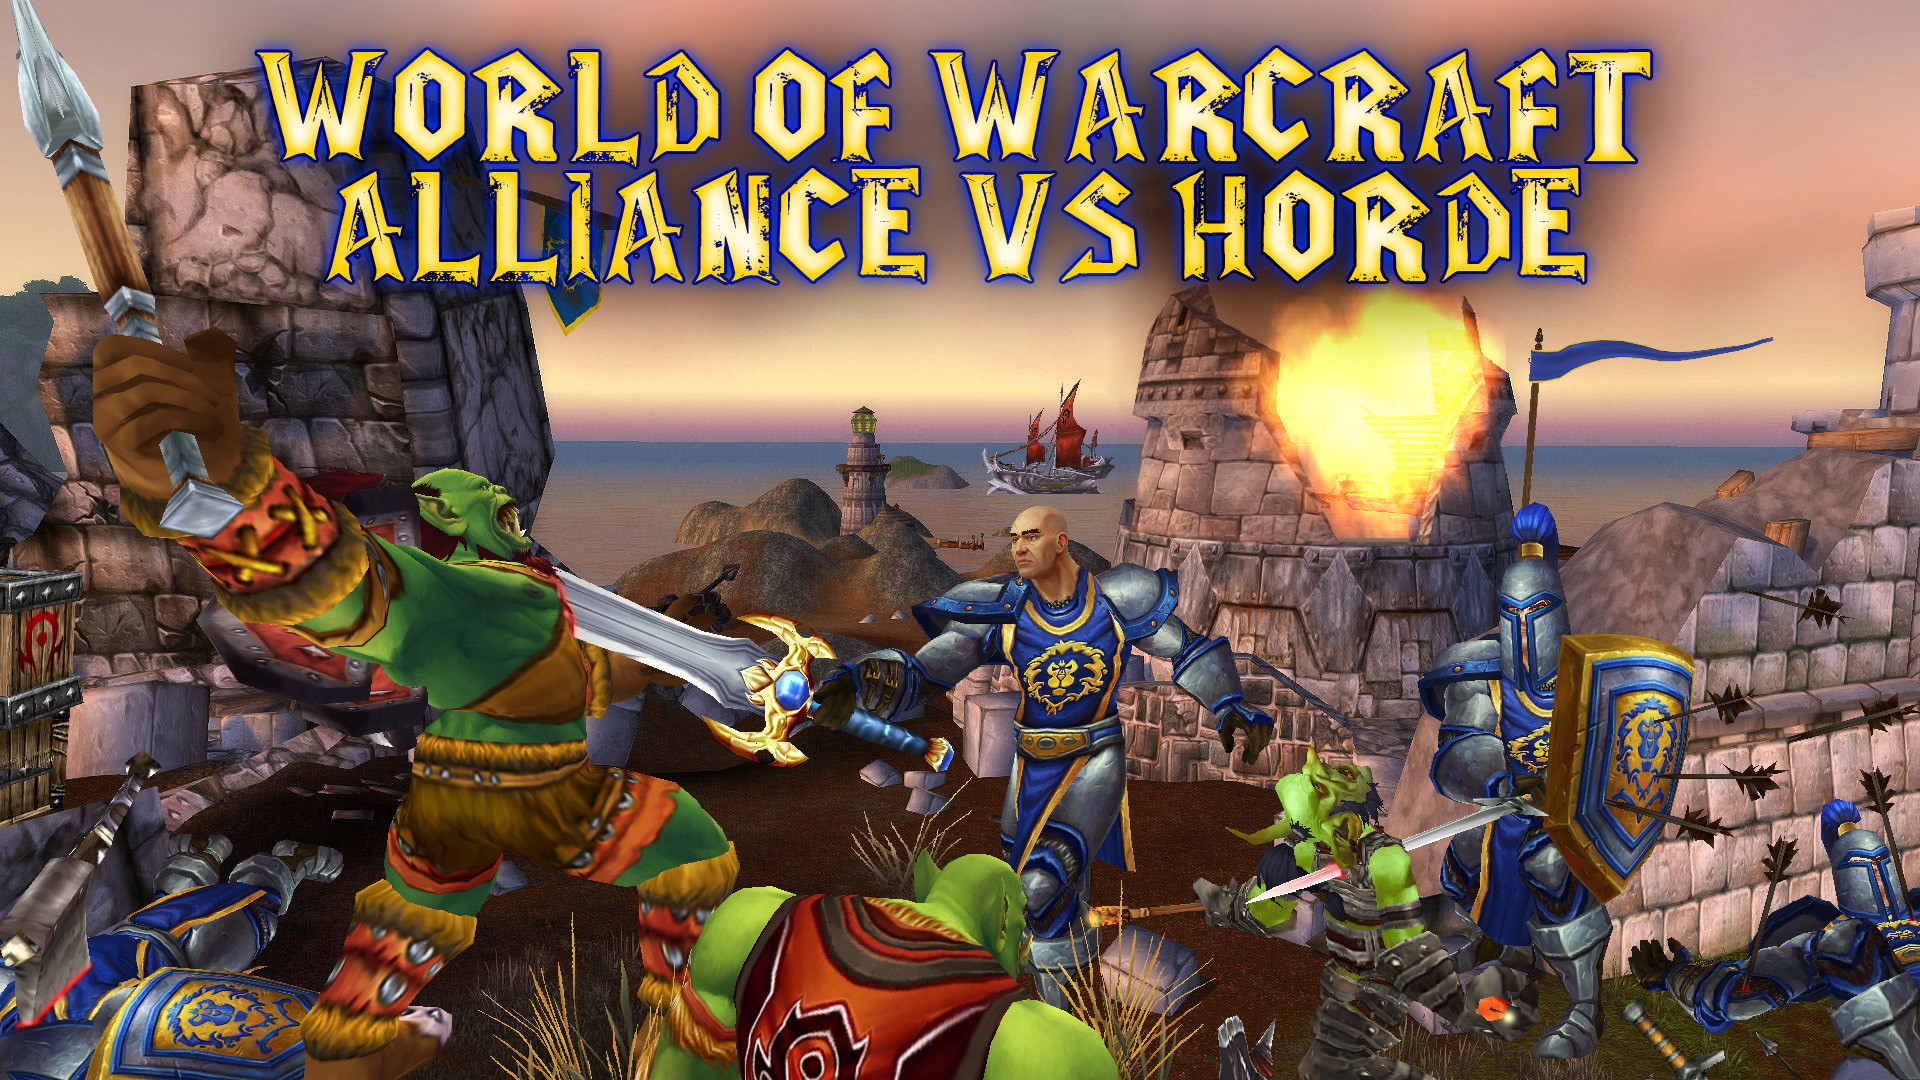 … World of Warcraft Wallpaper Alliance vs Horde Perk by percy1985